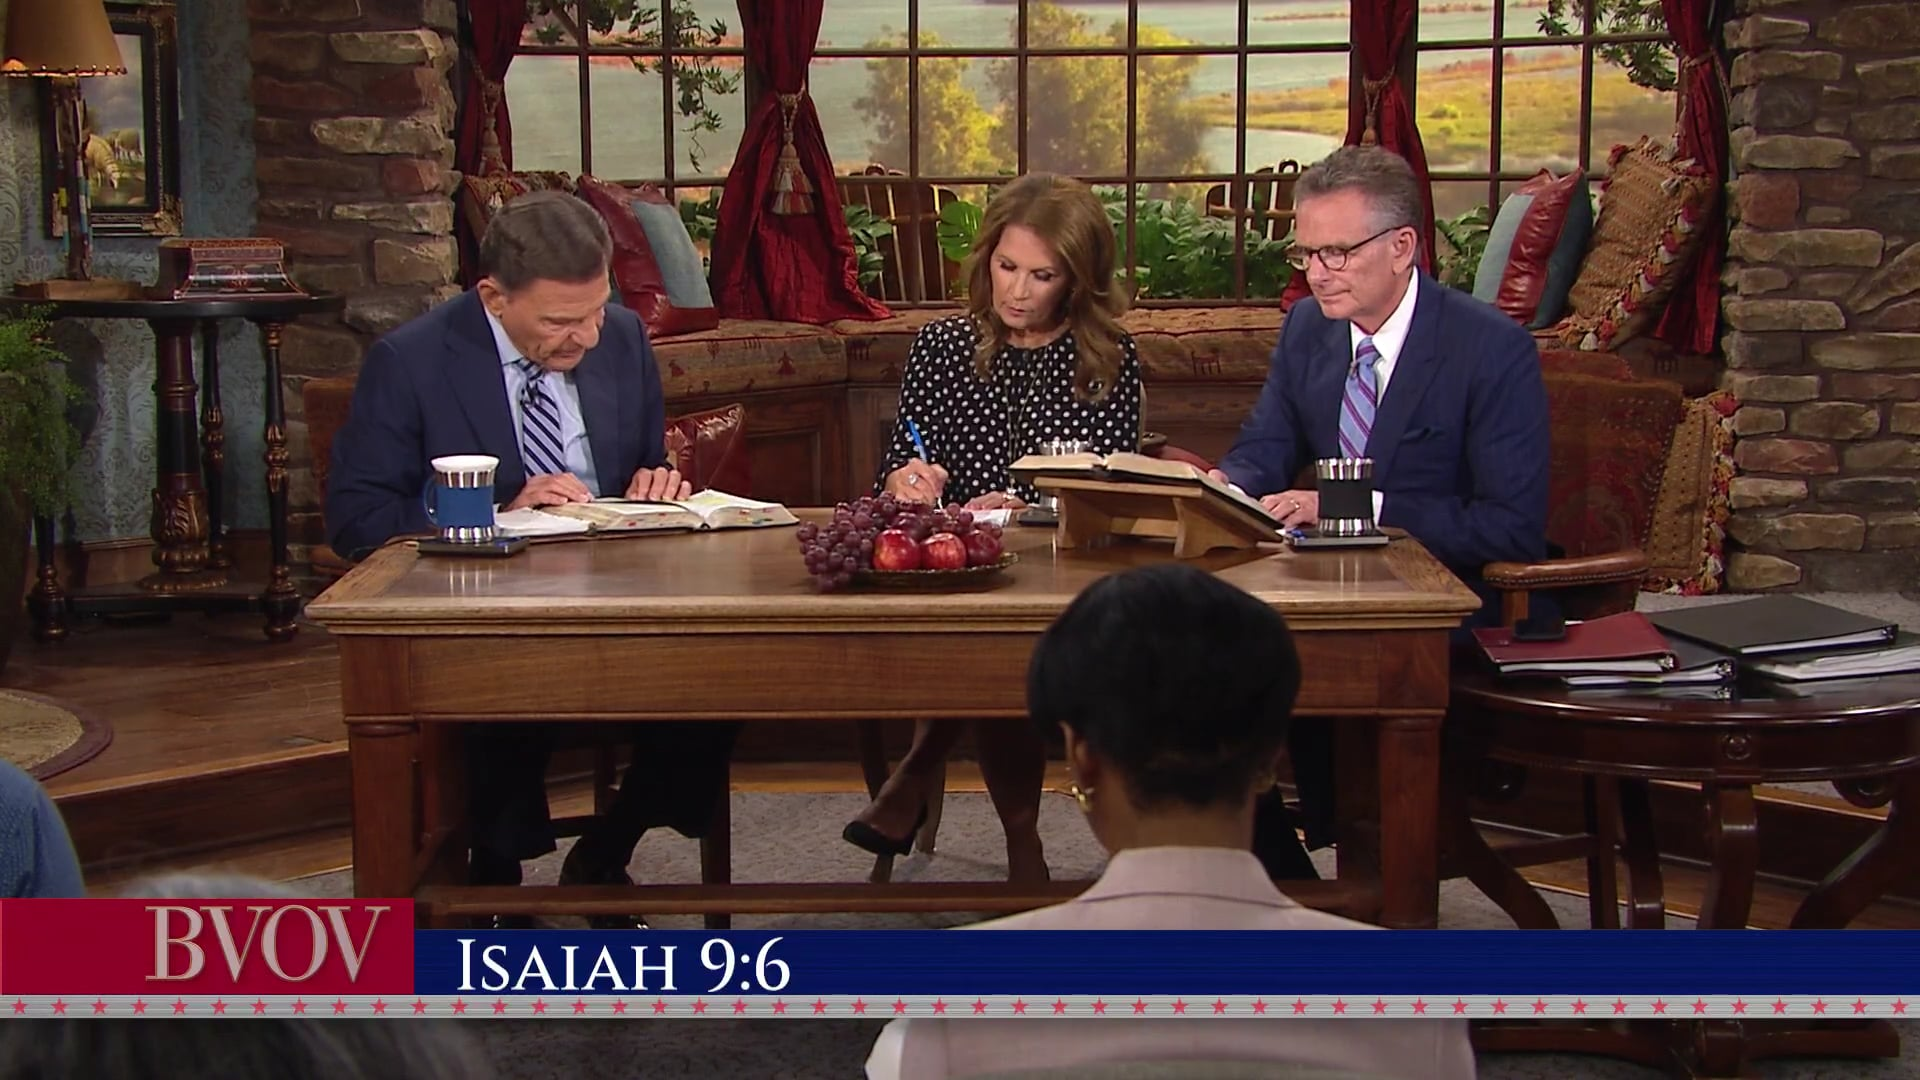 The implications of the assault on our religious rights are reason enough to vote in this election! Join Kenneth Copeland, Michele Bachmann and George Pearsons on Believer's Voice of Victory as they discuss the dangers of the Equality Act. Learn why this move is an effort to suppress religious freedoms, and how your vote can make all the difference this election!